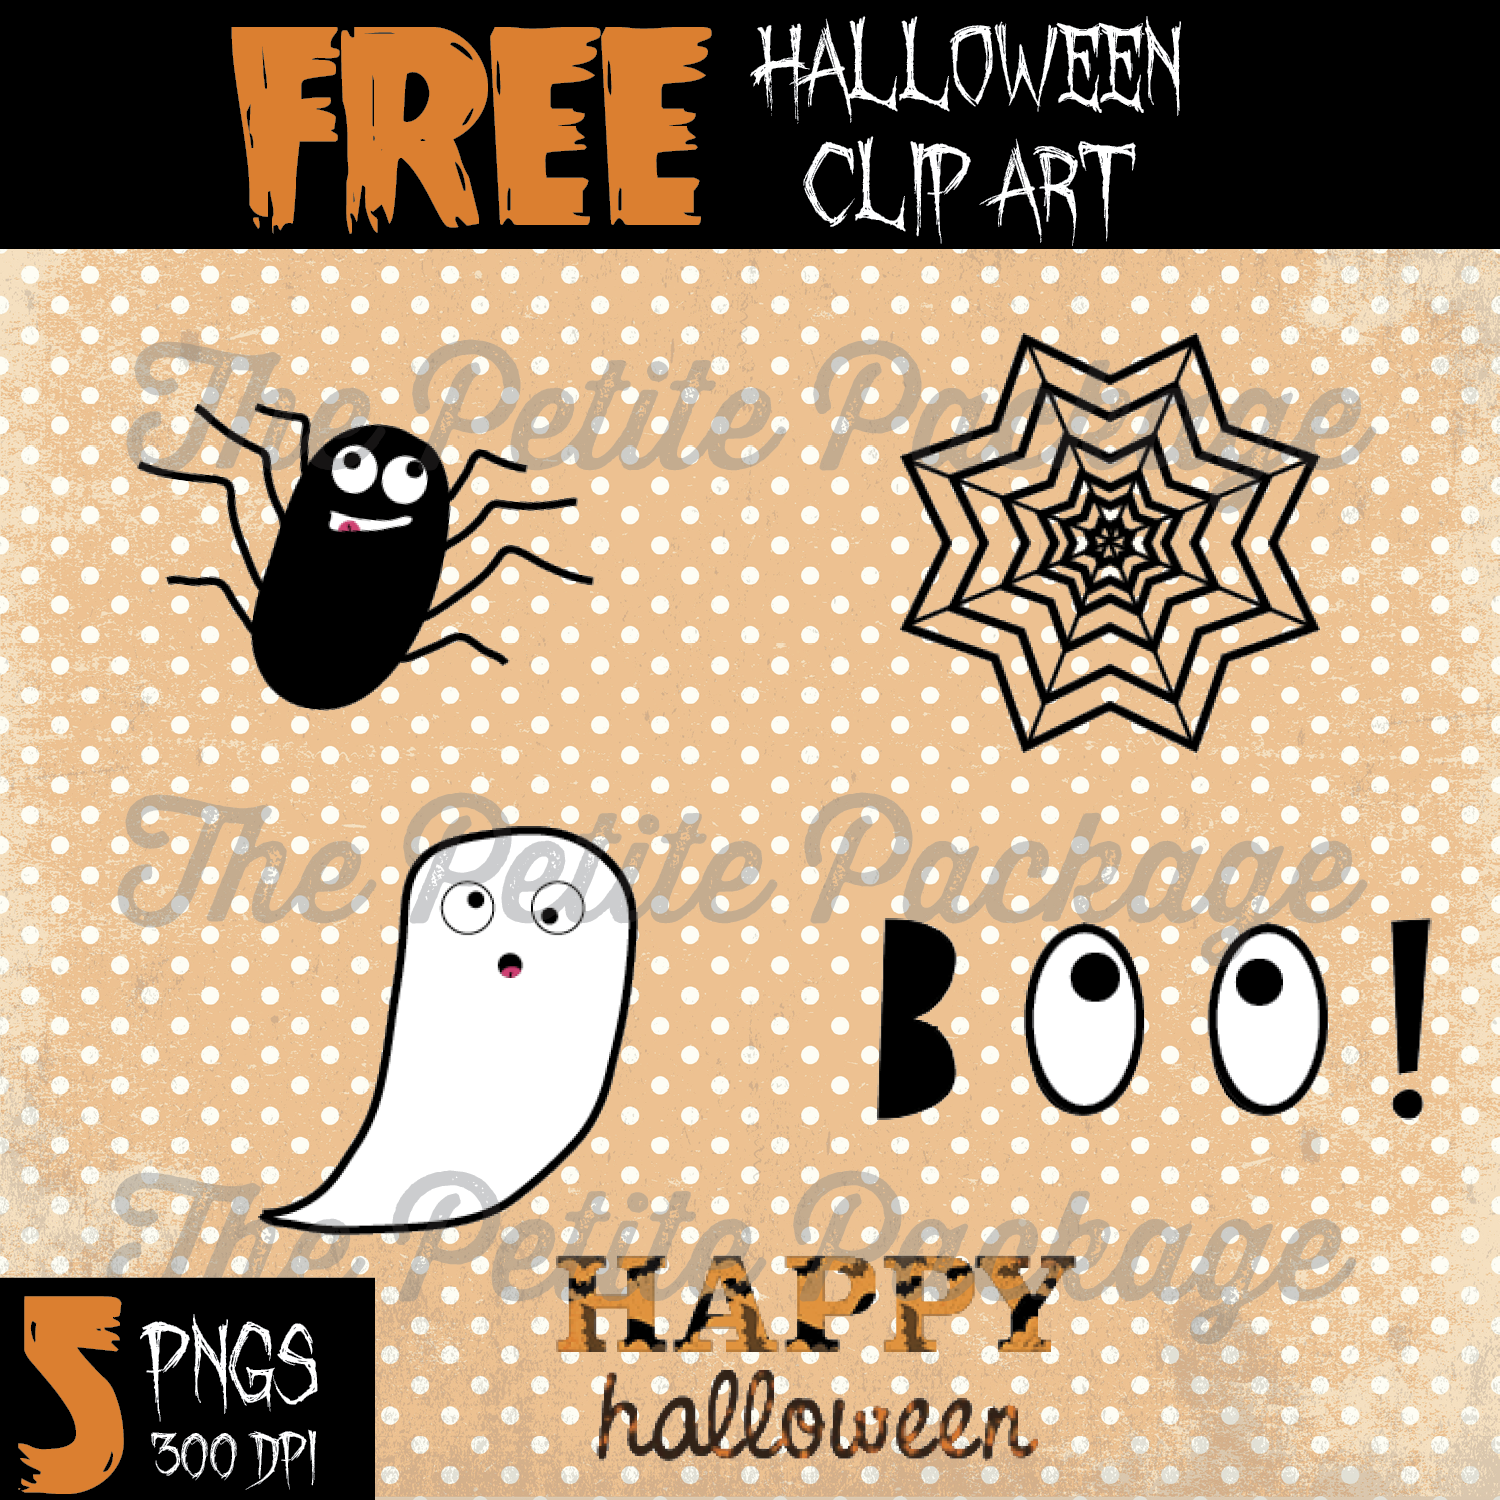 Thank you halloween clipart image freeuse download Freebie Friday: Downloadable Halloween Clip Art | The Petite Package image freeuse download